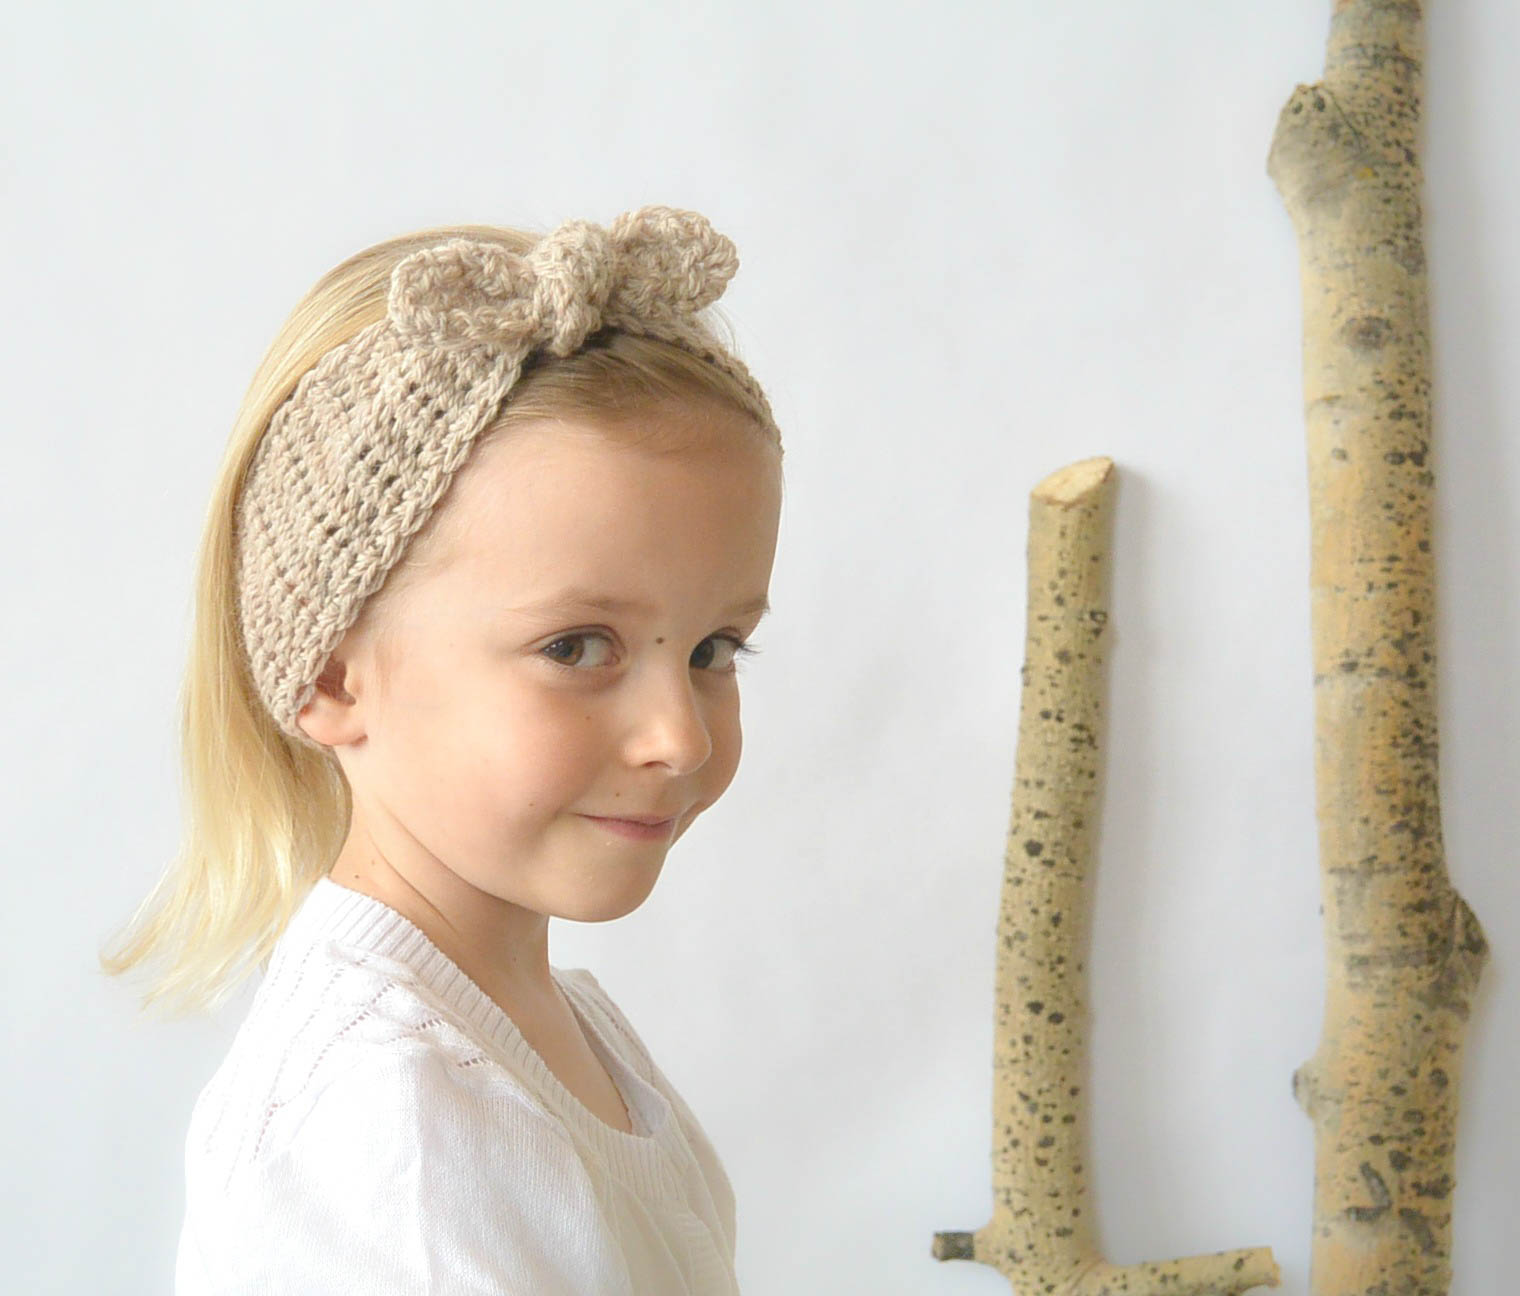 Naturally Chic Tie-Up Crochet Headband Pattern – Mama In A Stitch